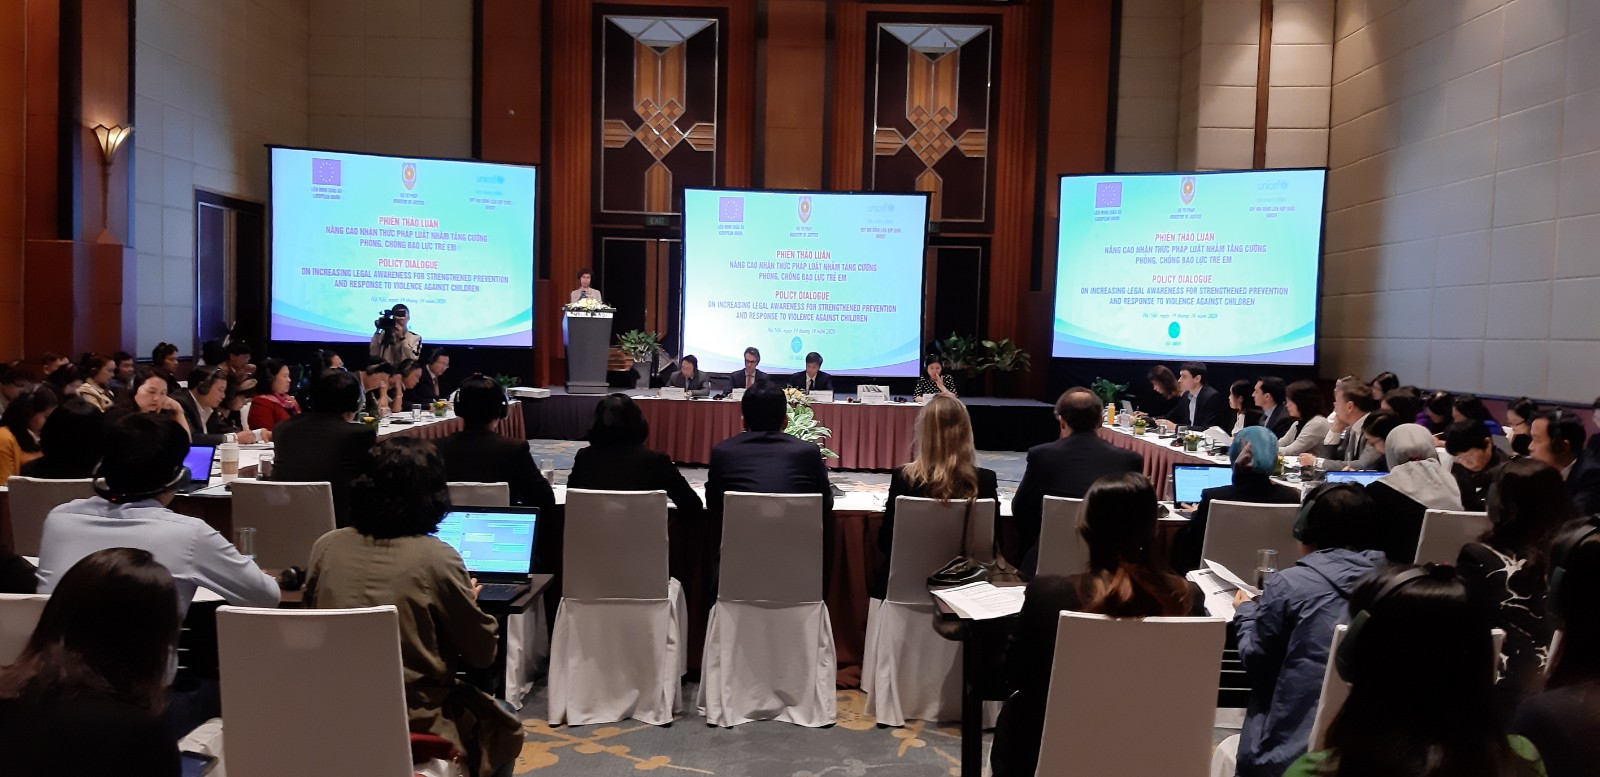 Hanoi dialogue discusses ways to strengthen prevention, response to violence against children